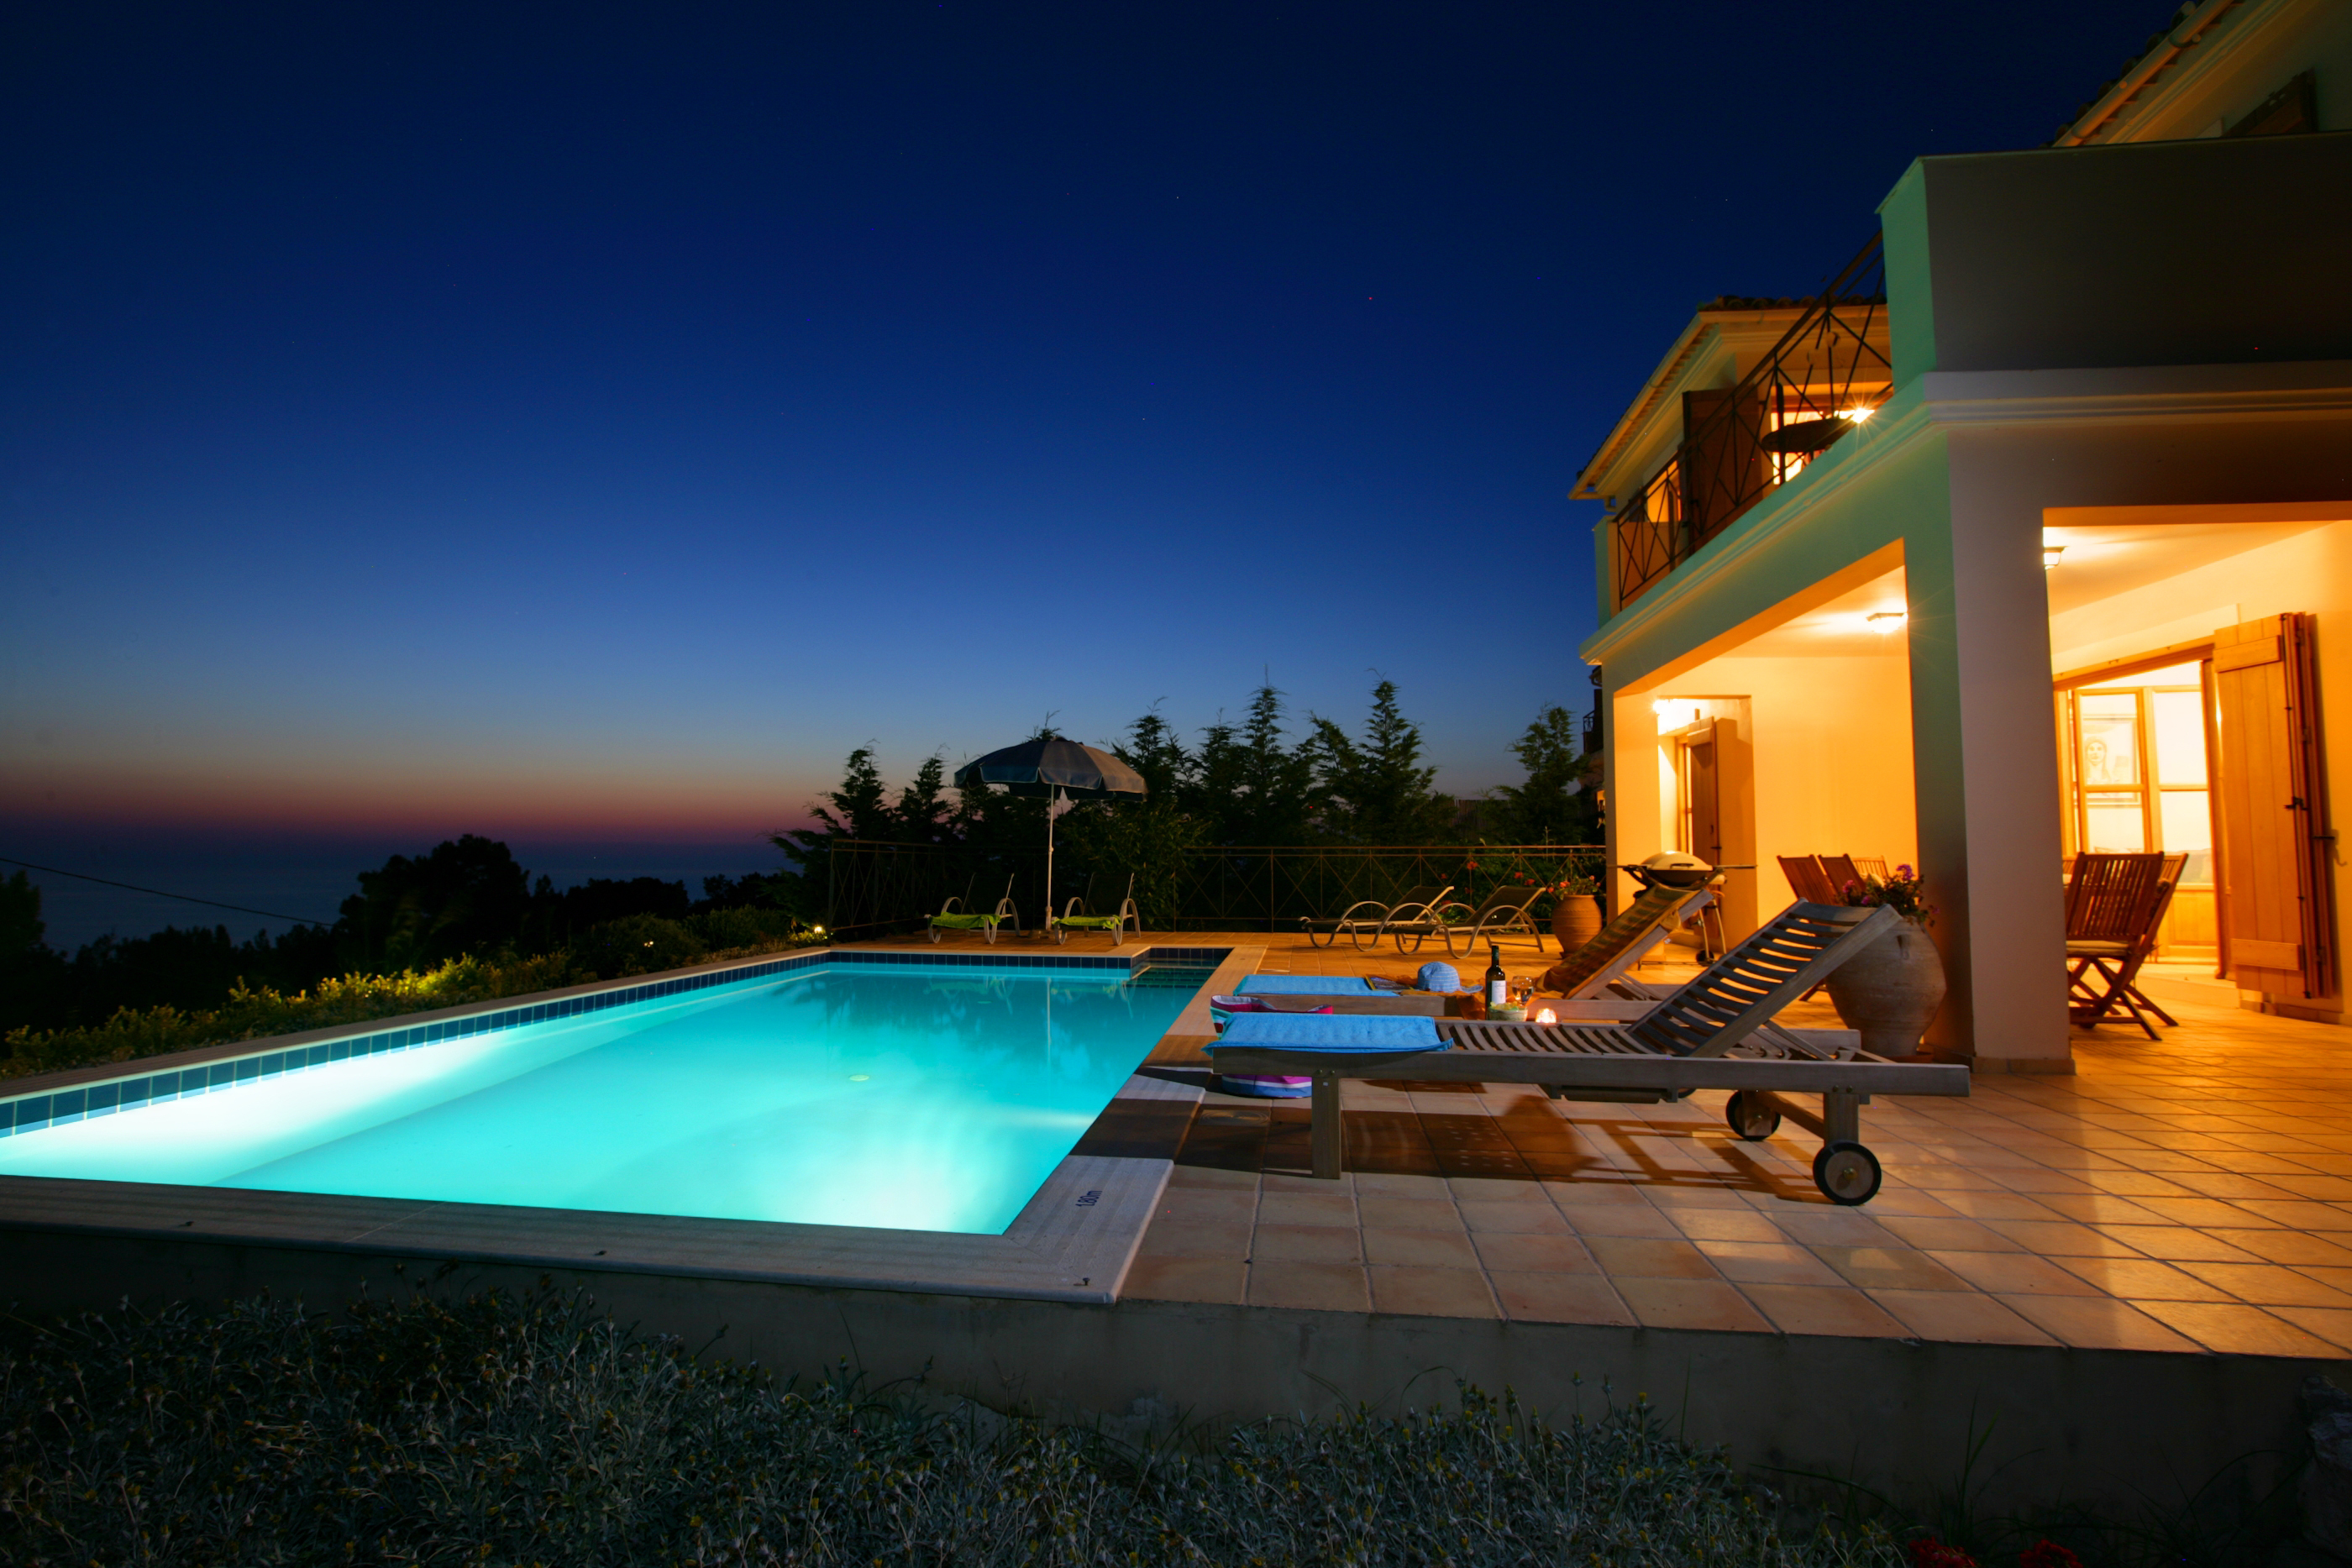 Villa Bernice evening pool